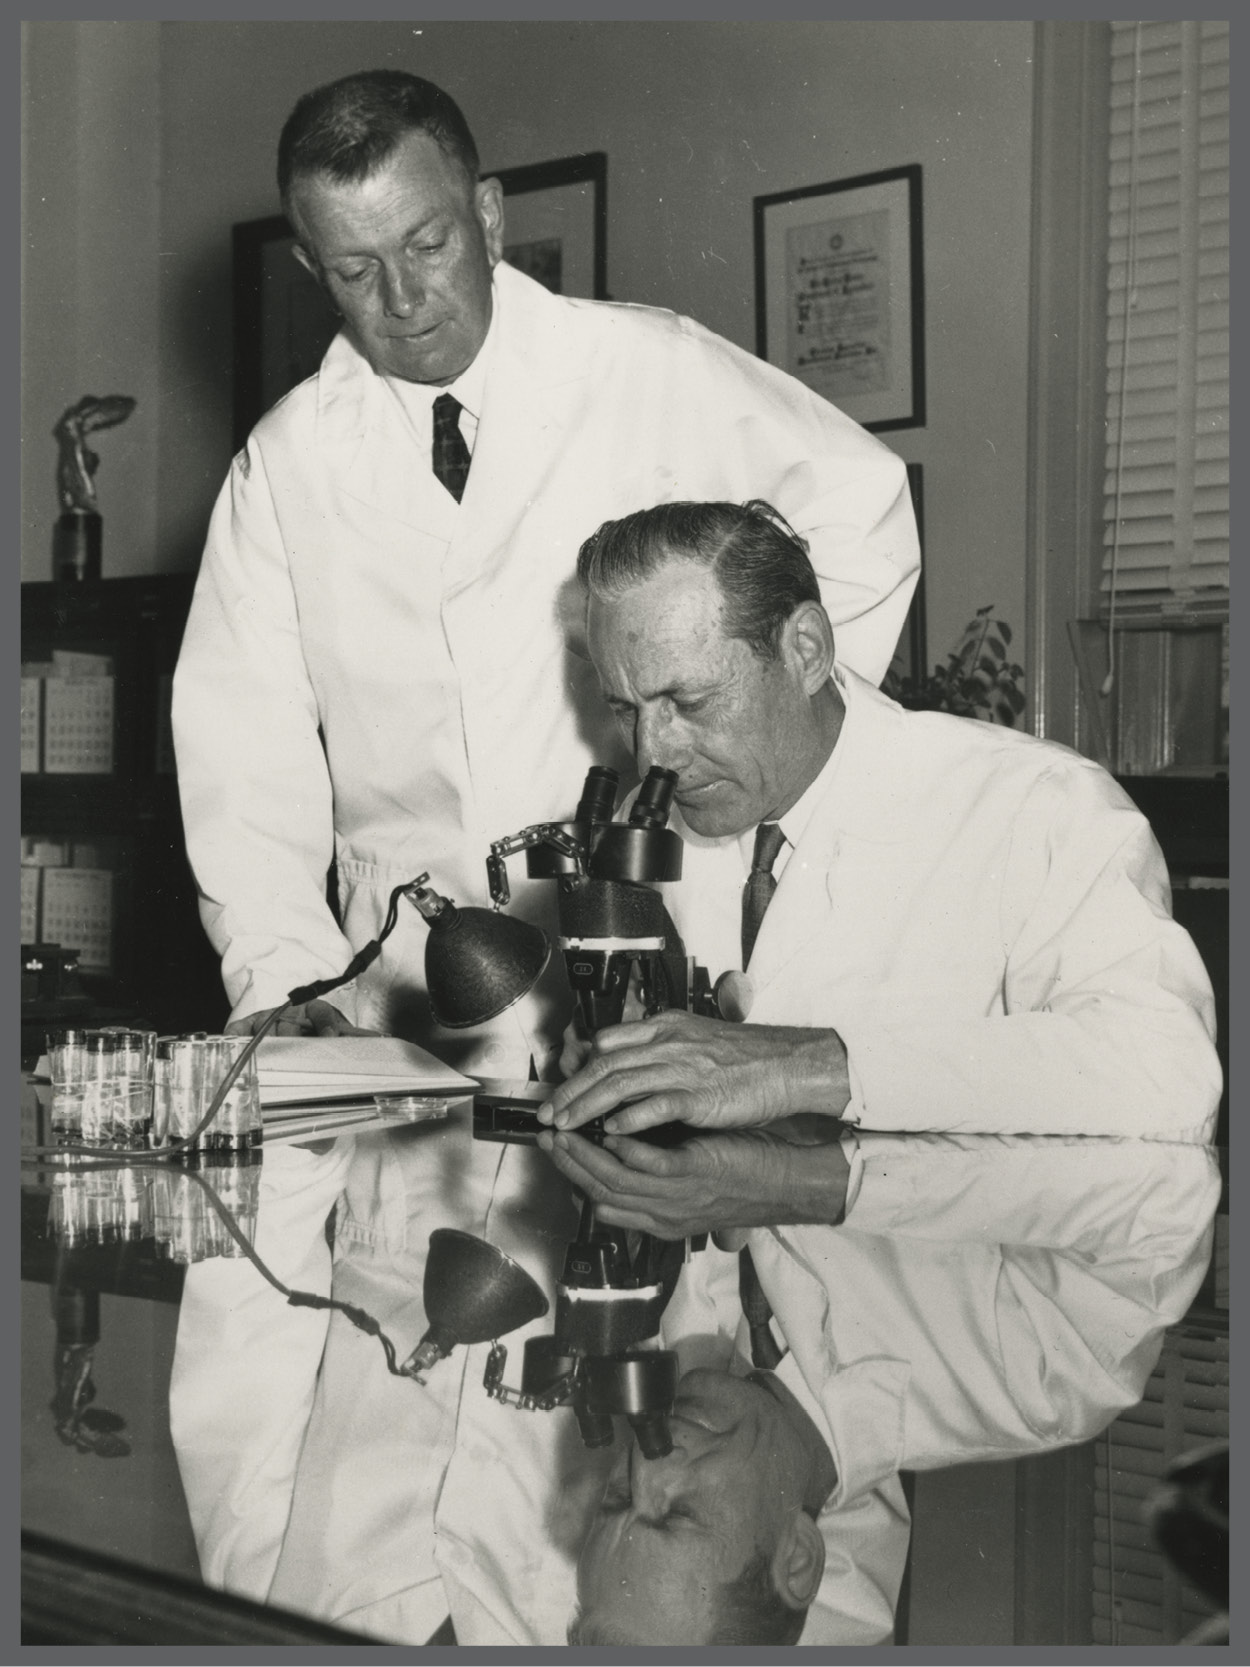 Raymond C. Bushland (standing) and Edward F. Knipling (seated at microscope).  Photo courtesy of World Food Prize Foundation.